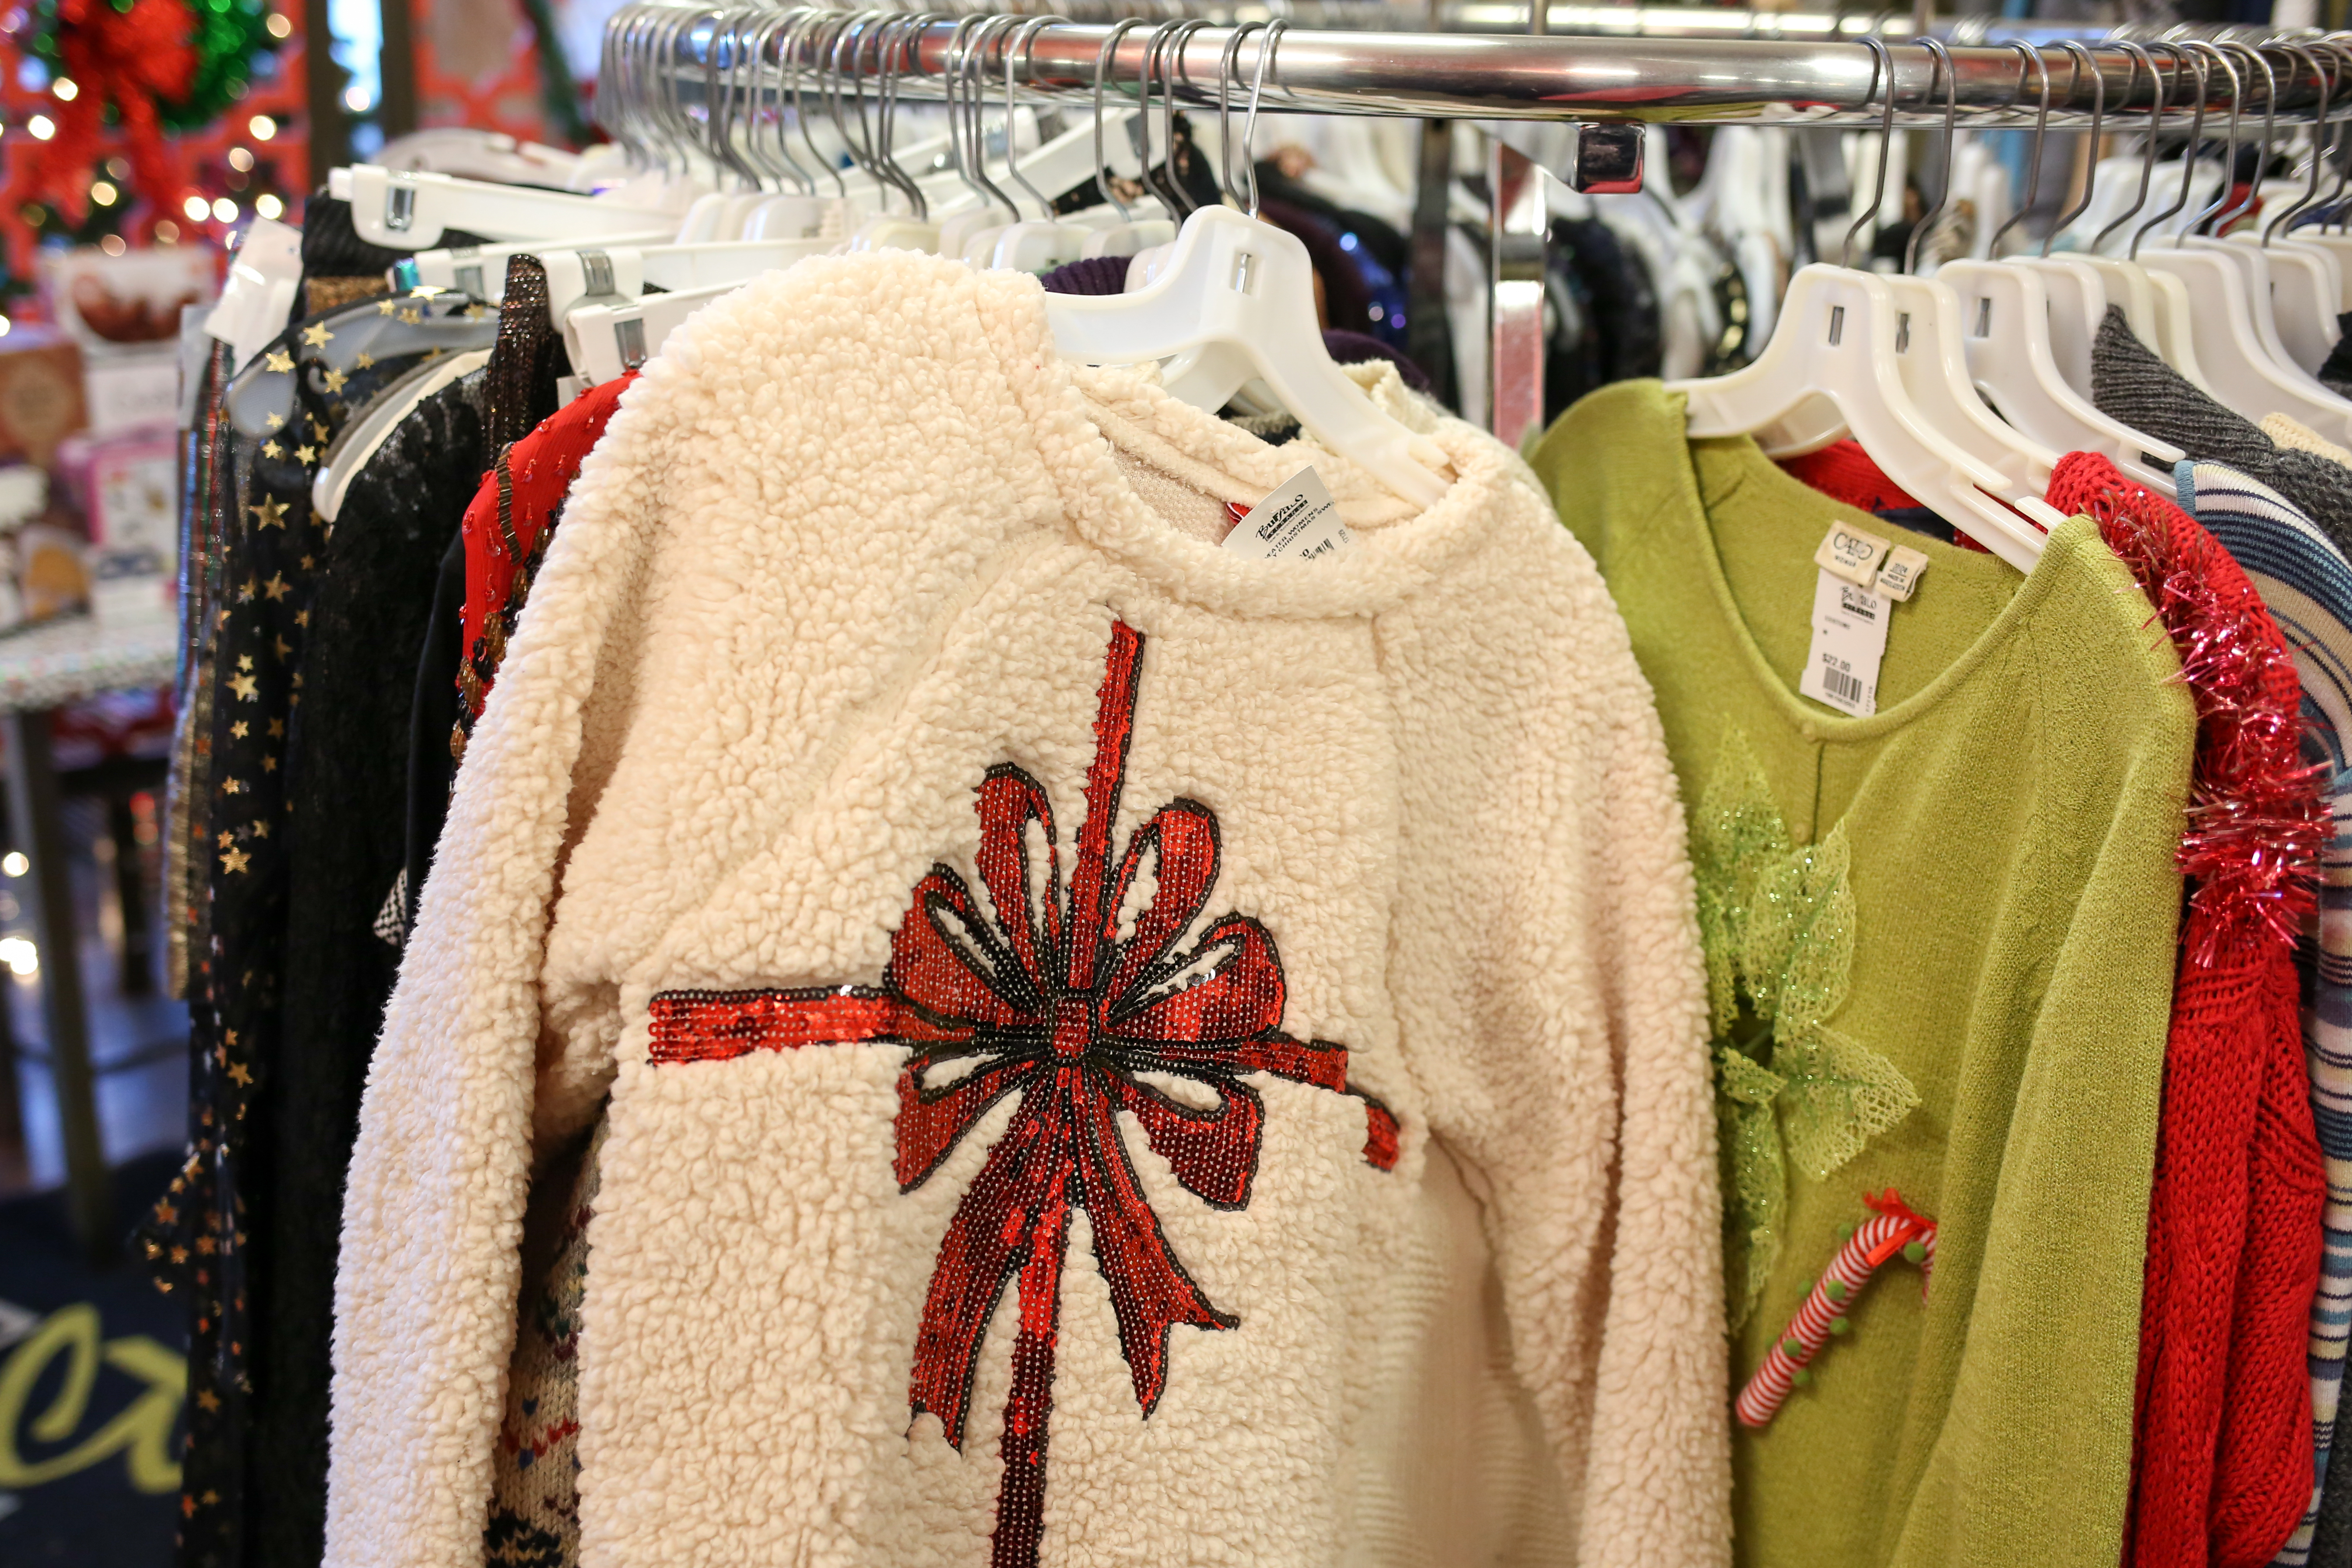 Buffalo Exchange,{&amp;nbsp;}1318 14th St NW - $13 (Amanda Andrade-Rhoades/DC Refined)<p></p>